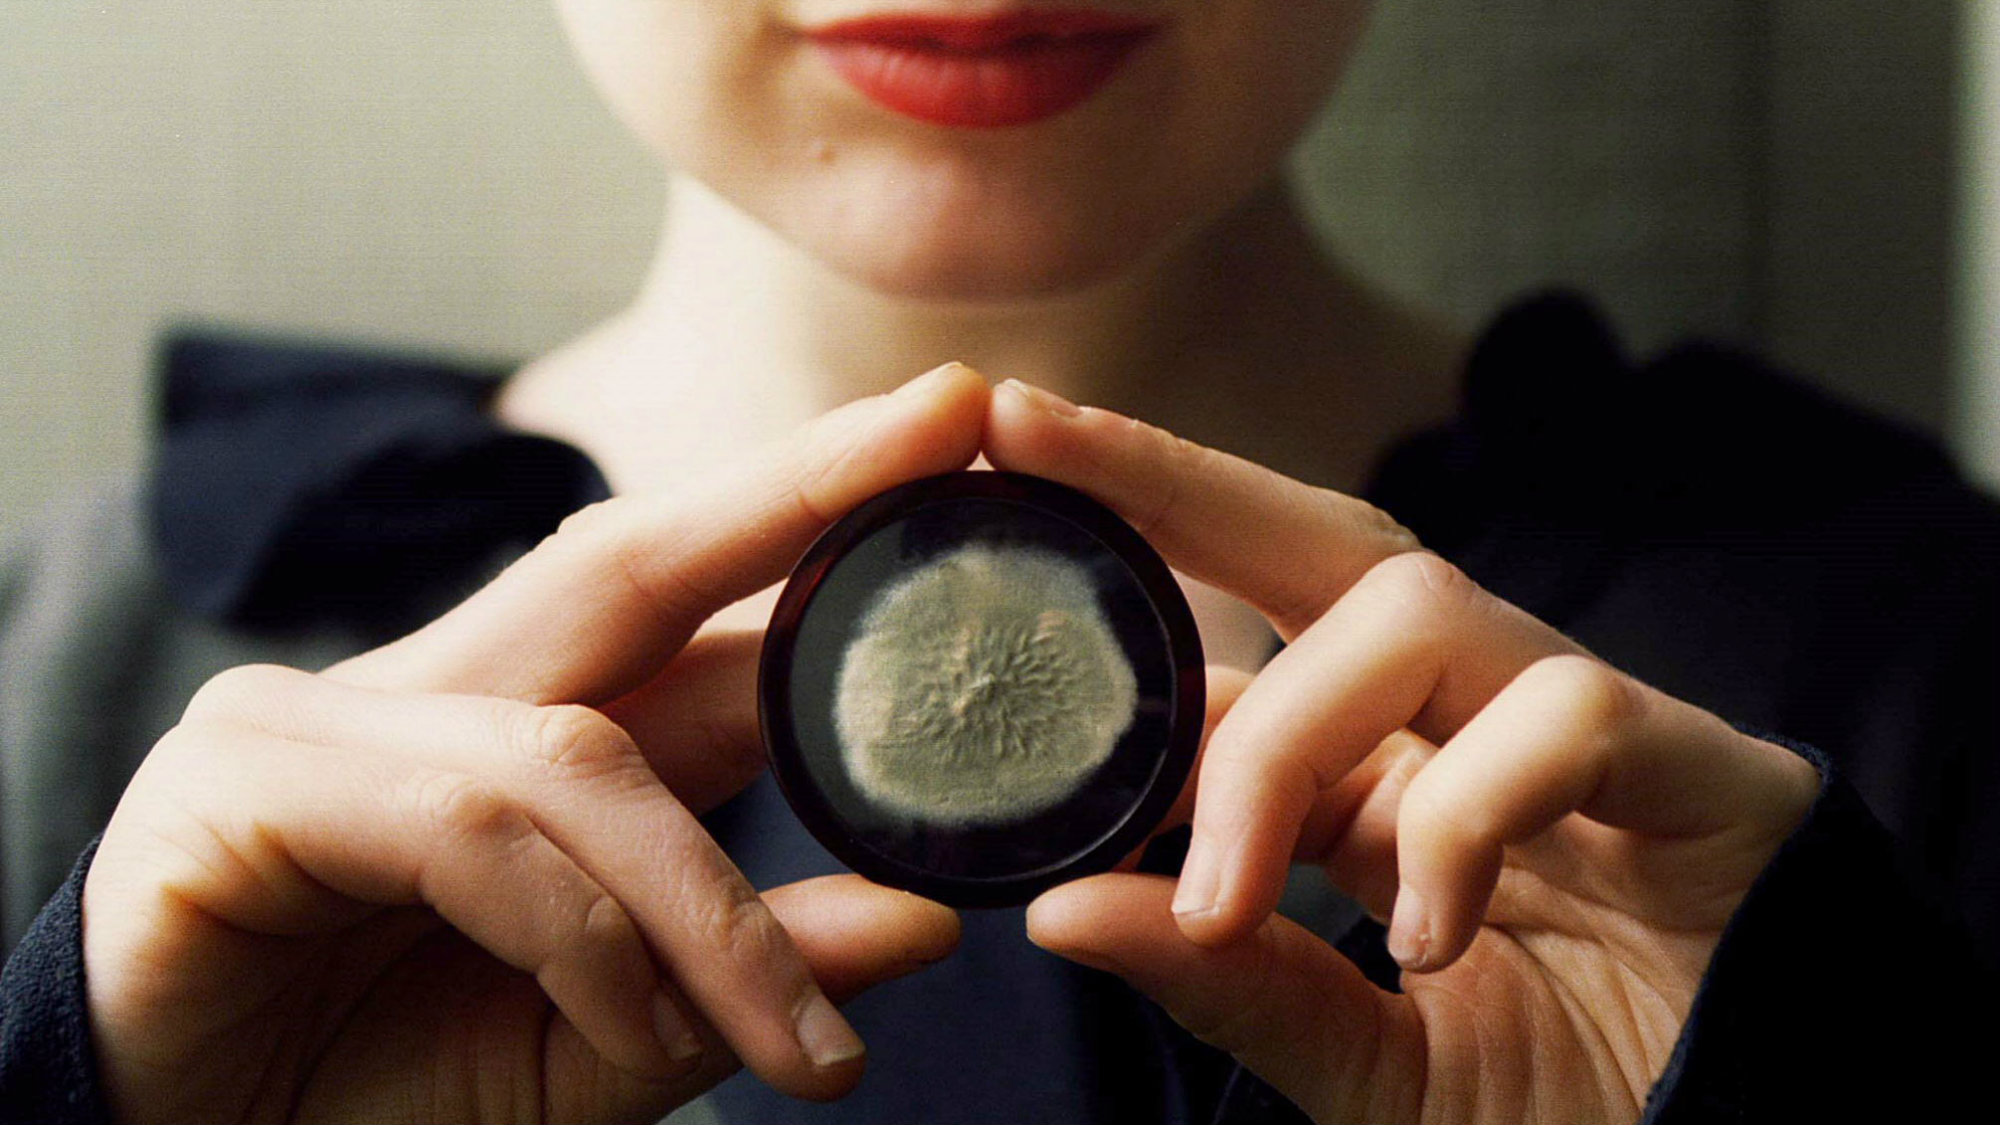 A sample of the original penicillin mould cultivated by scientific pioneer Alexander Fleming. Photo is from 1996, the year this piece sold at auction.